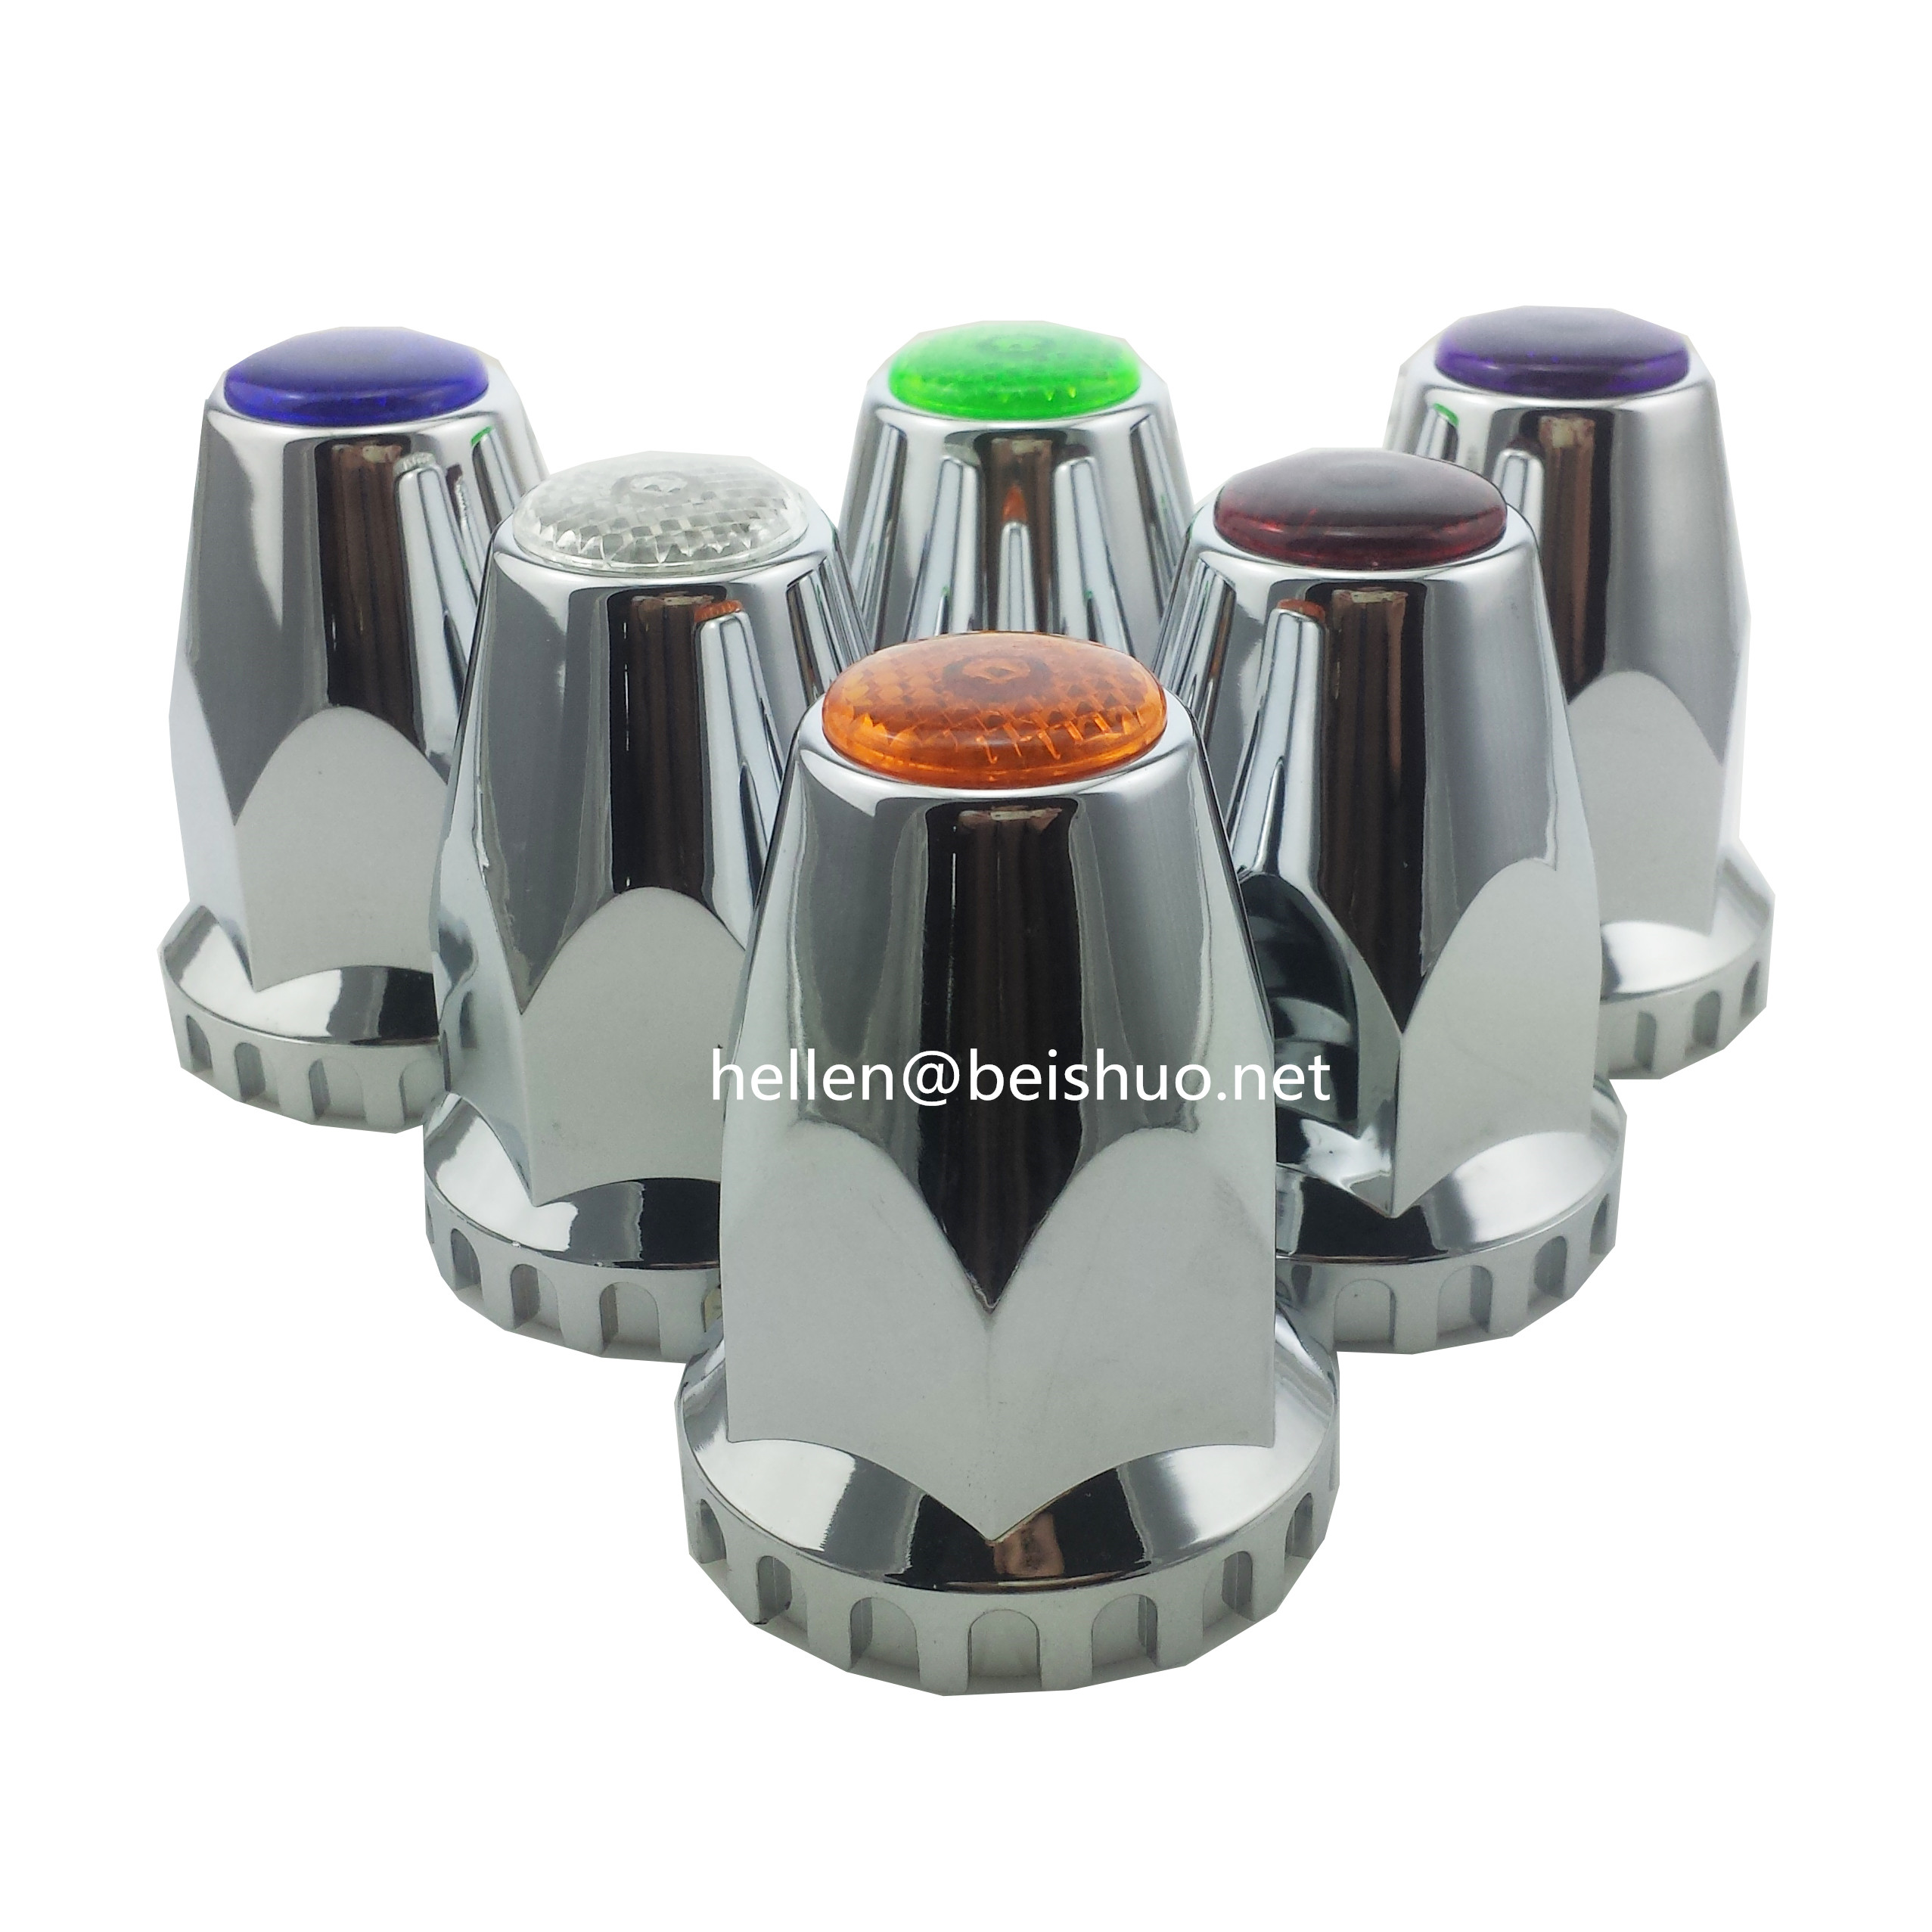 33mm Chrome Plastic Reflective Nut Covers - Thread On